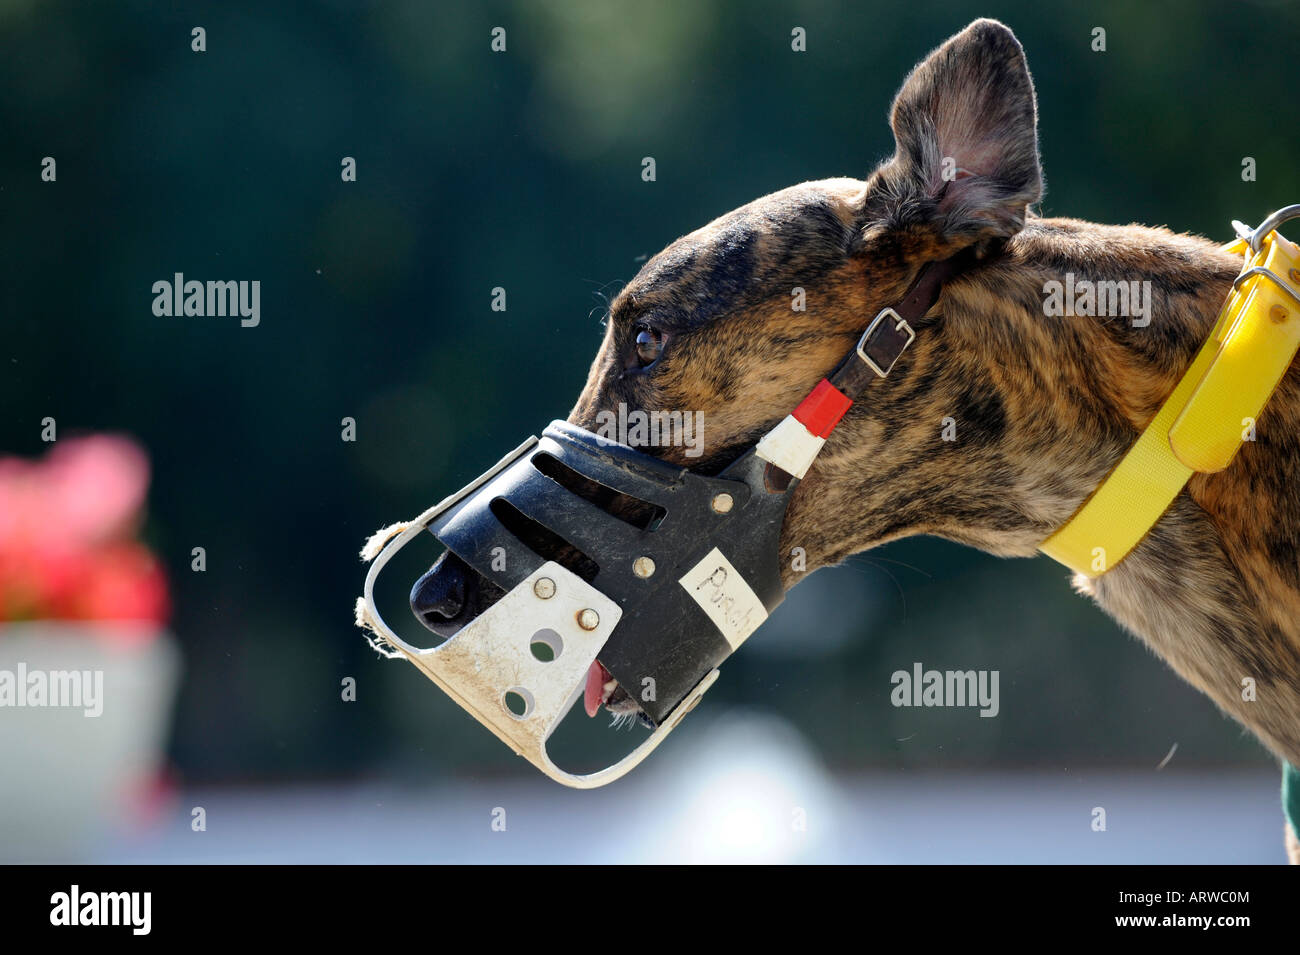 close up of head and muzzle Greyhound dog racing at Fort Myers Naples dog track Florida - Stock Image